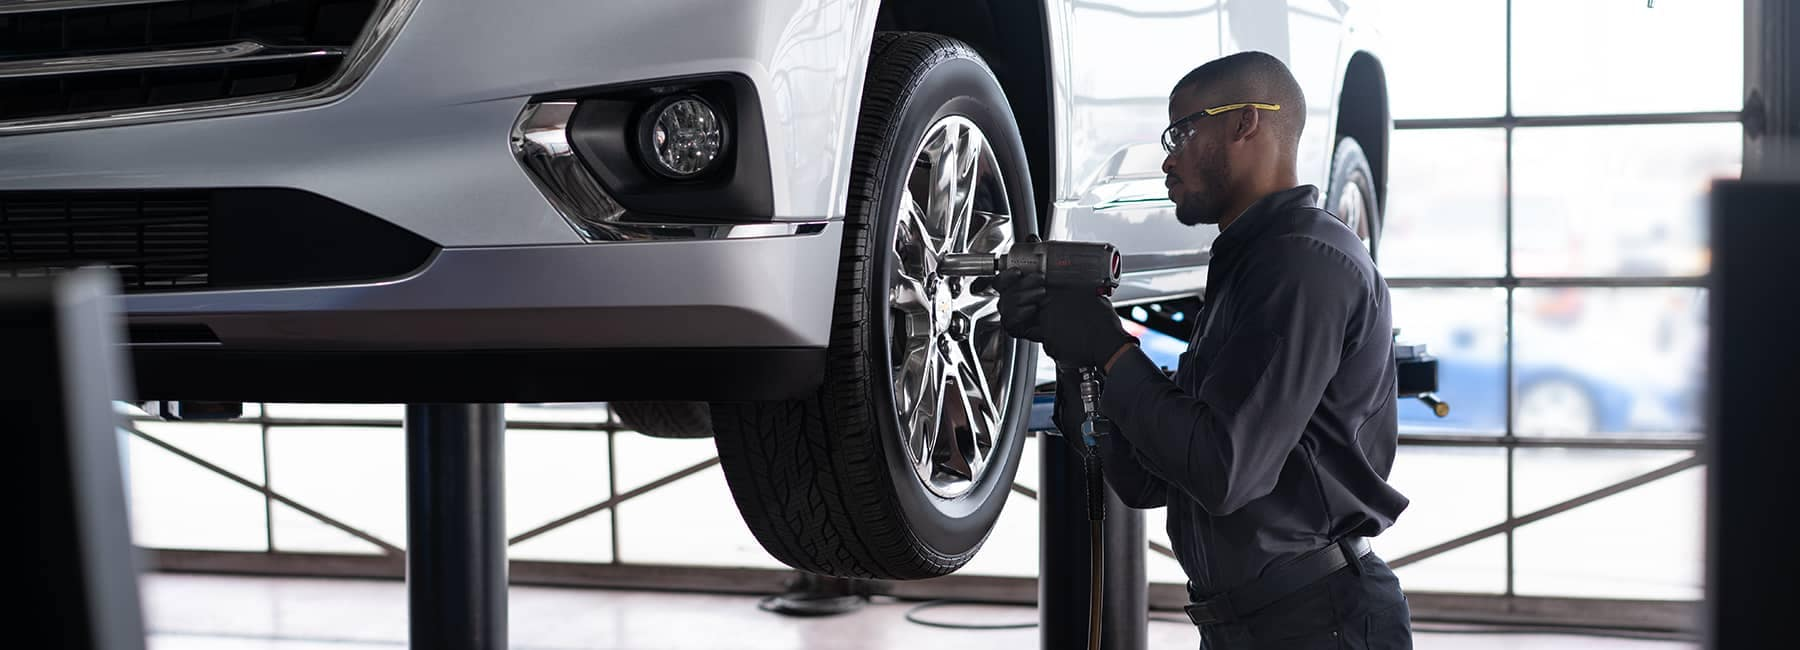 Certified technician tightens bolts on tire